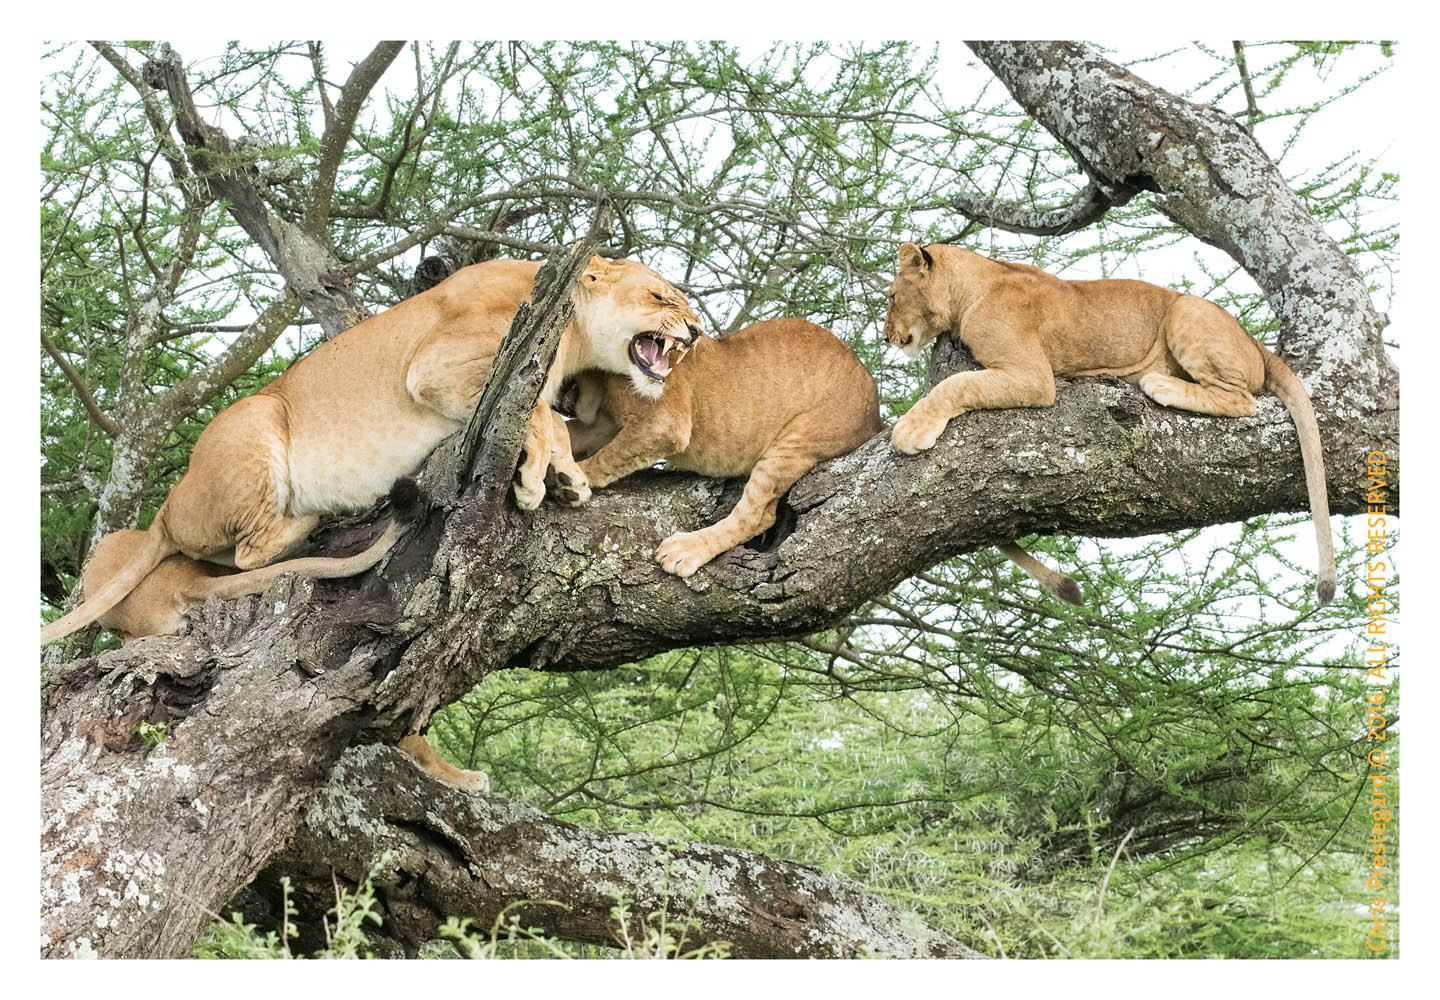 Lions at Ndutu, Tanzania Feb. 2016